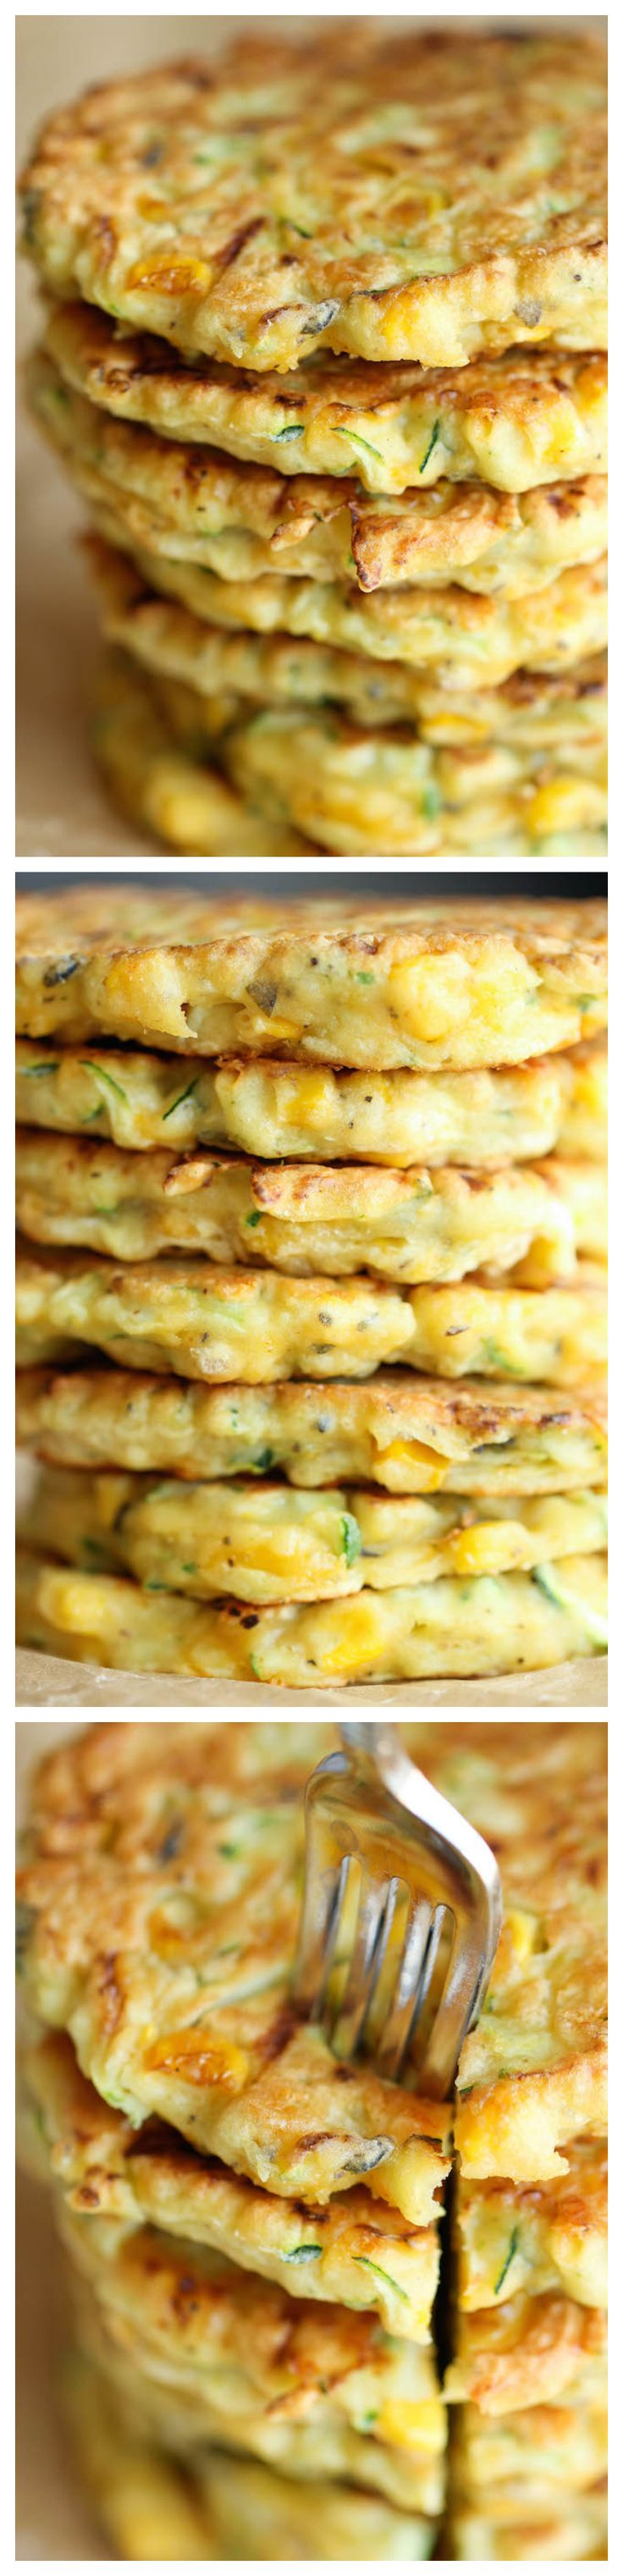 "Zucchini Corn Pancakes - Super easy pancakes perfect as a side dish or appetizer. And best of all, they don't even taste ""healthy""!: Corn Fritters, Side Dishes, Zucchini Corn, Corn Pancakes, Tasting Healthy, Corn Cakes, Super Easy, Pancakes Perfect, Easy Pancakes"